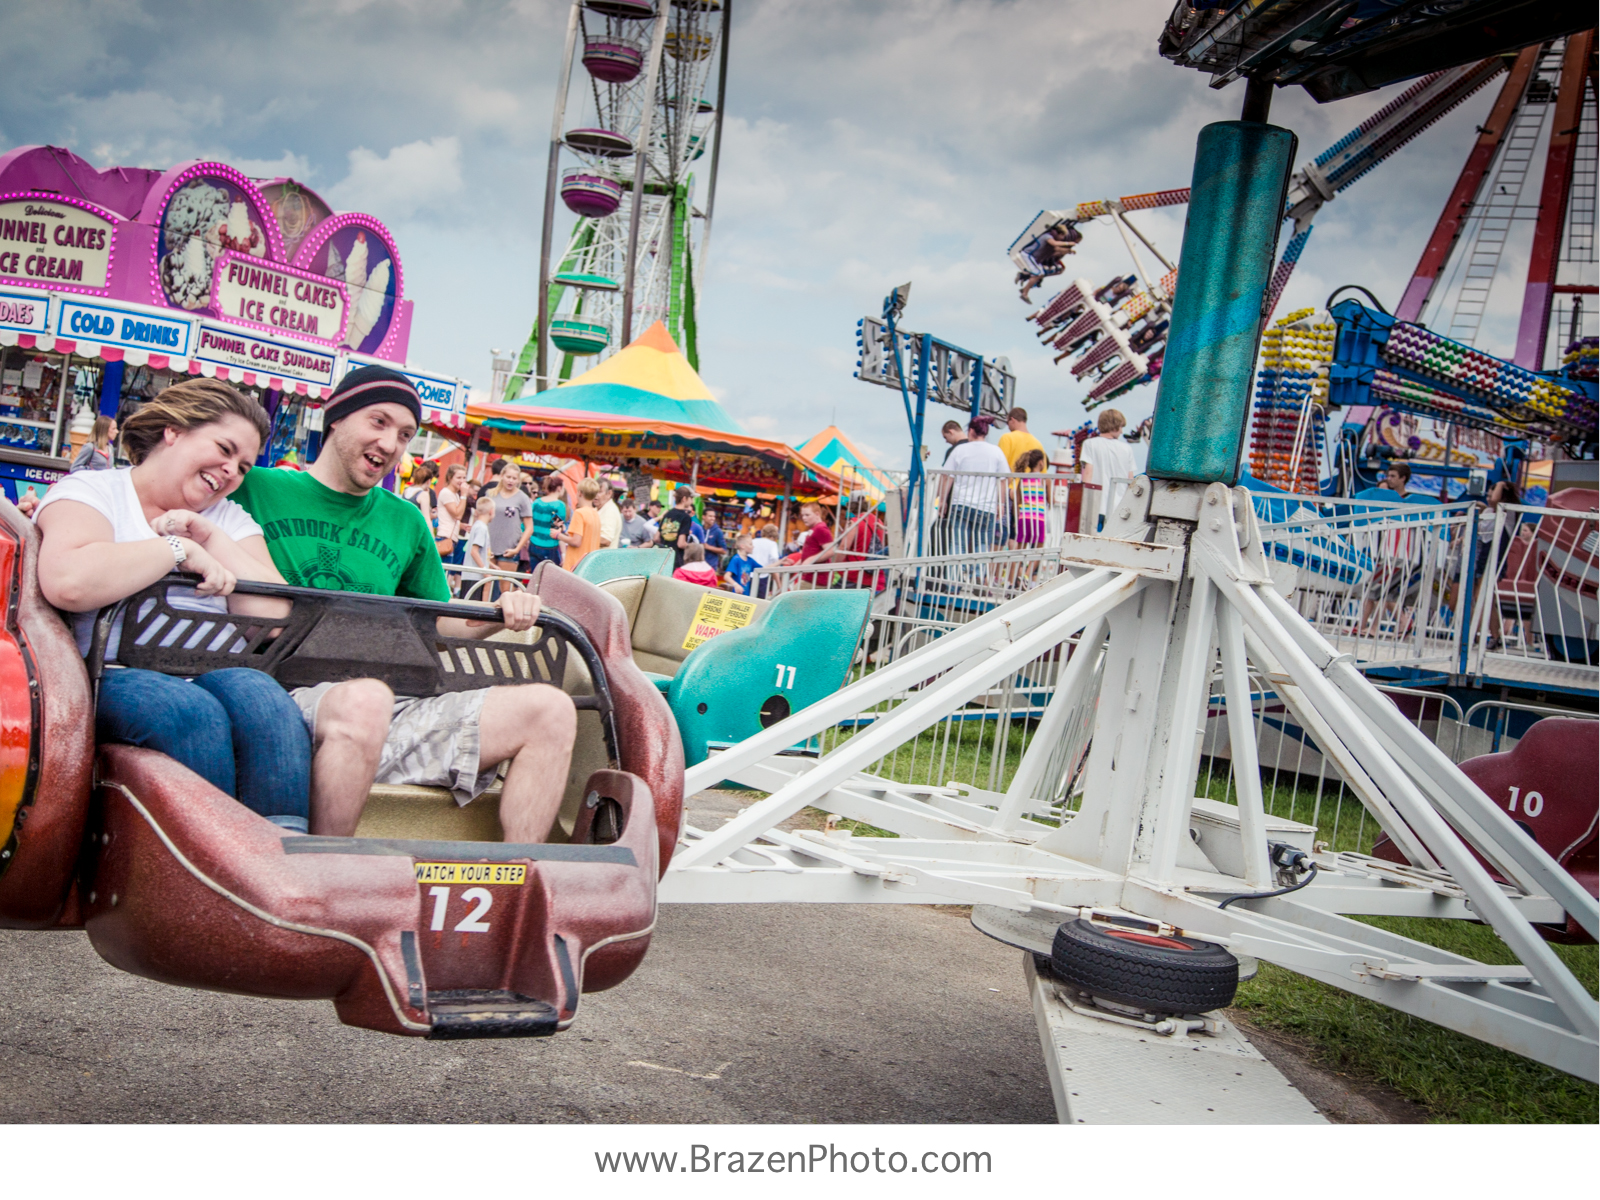 Florida State Fair-Orlando-Brazen Photo-21.jpg